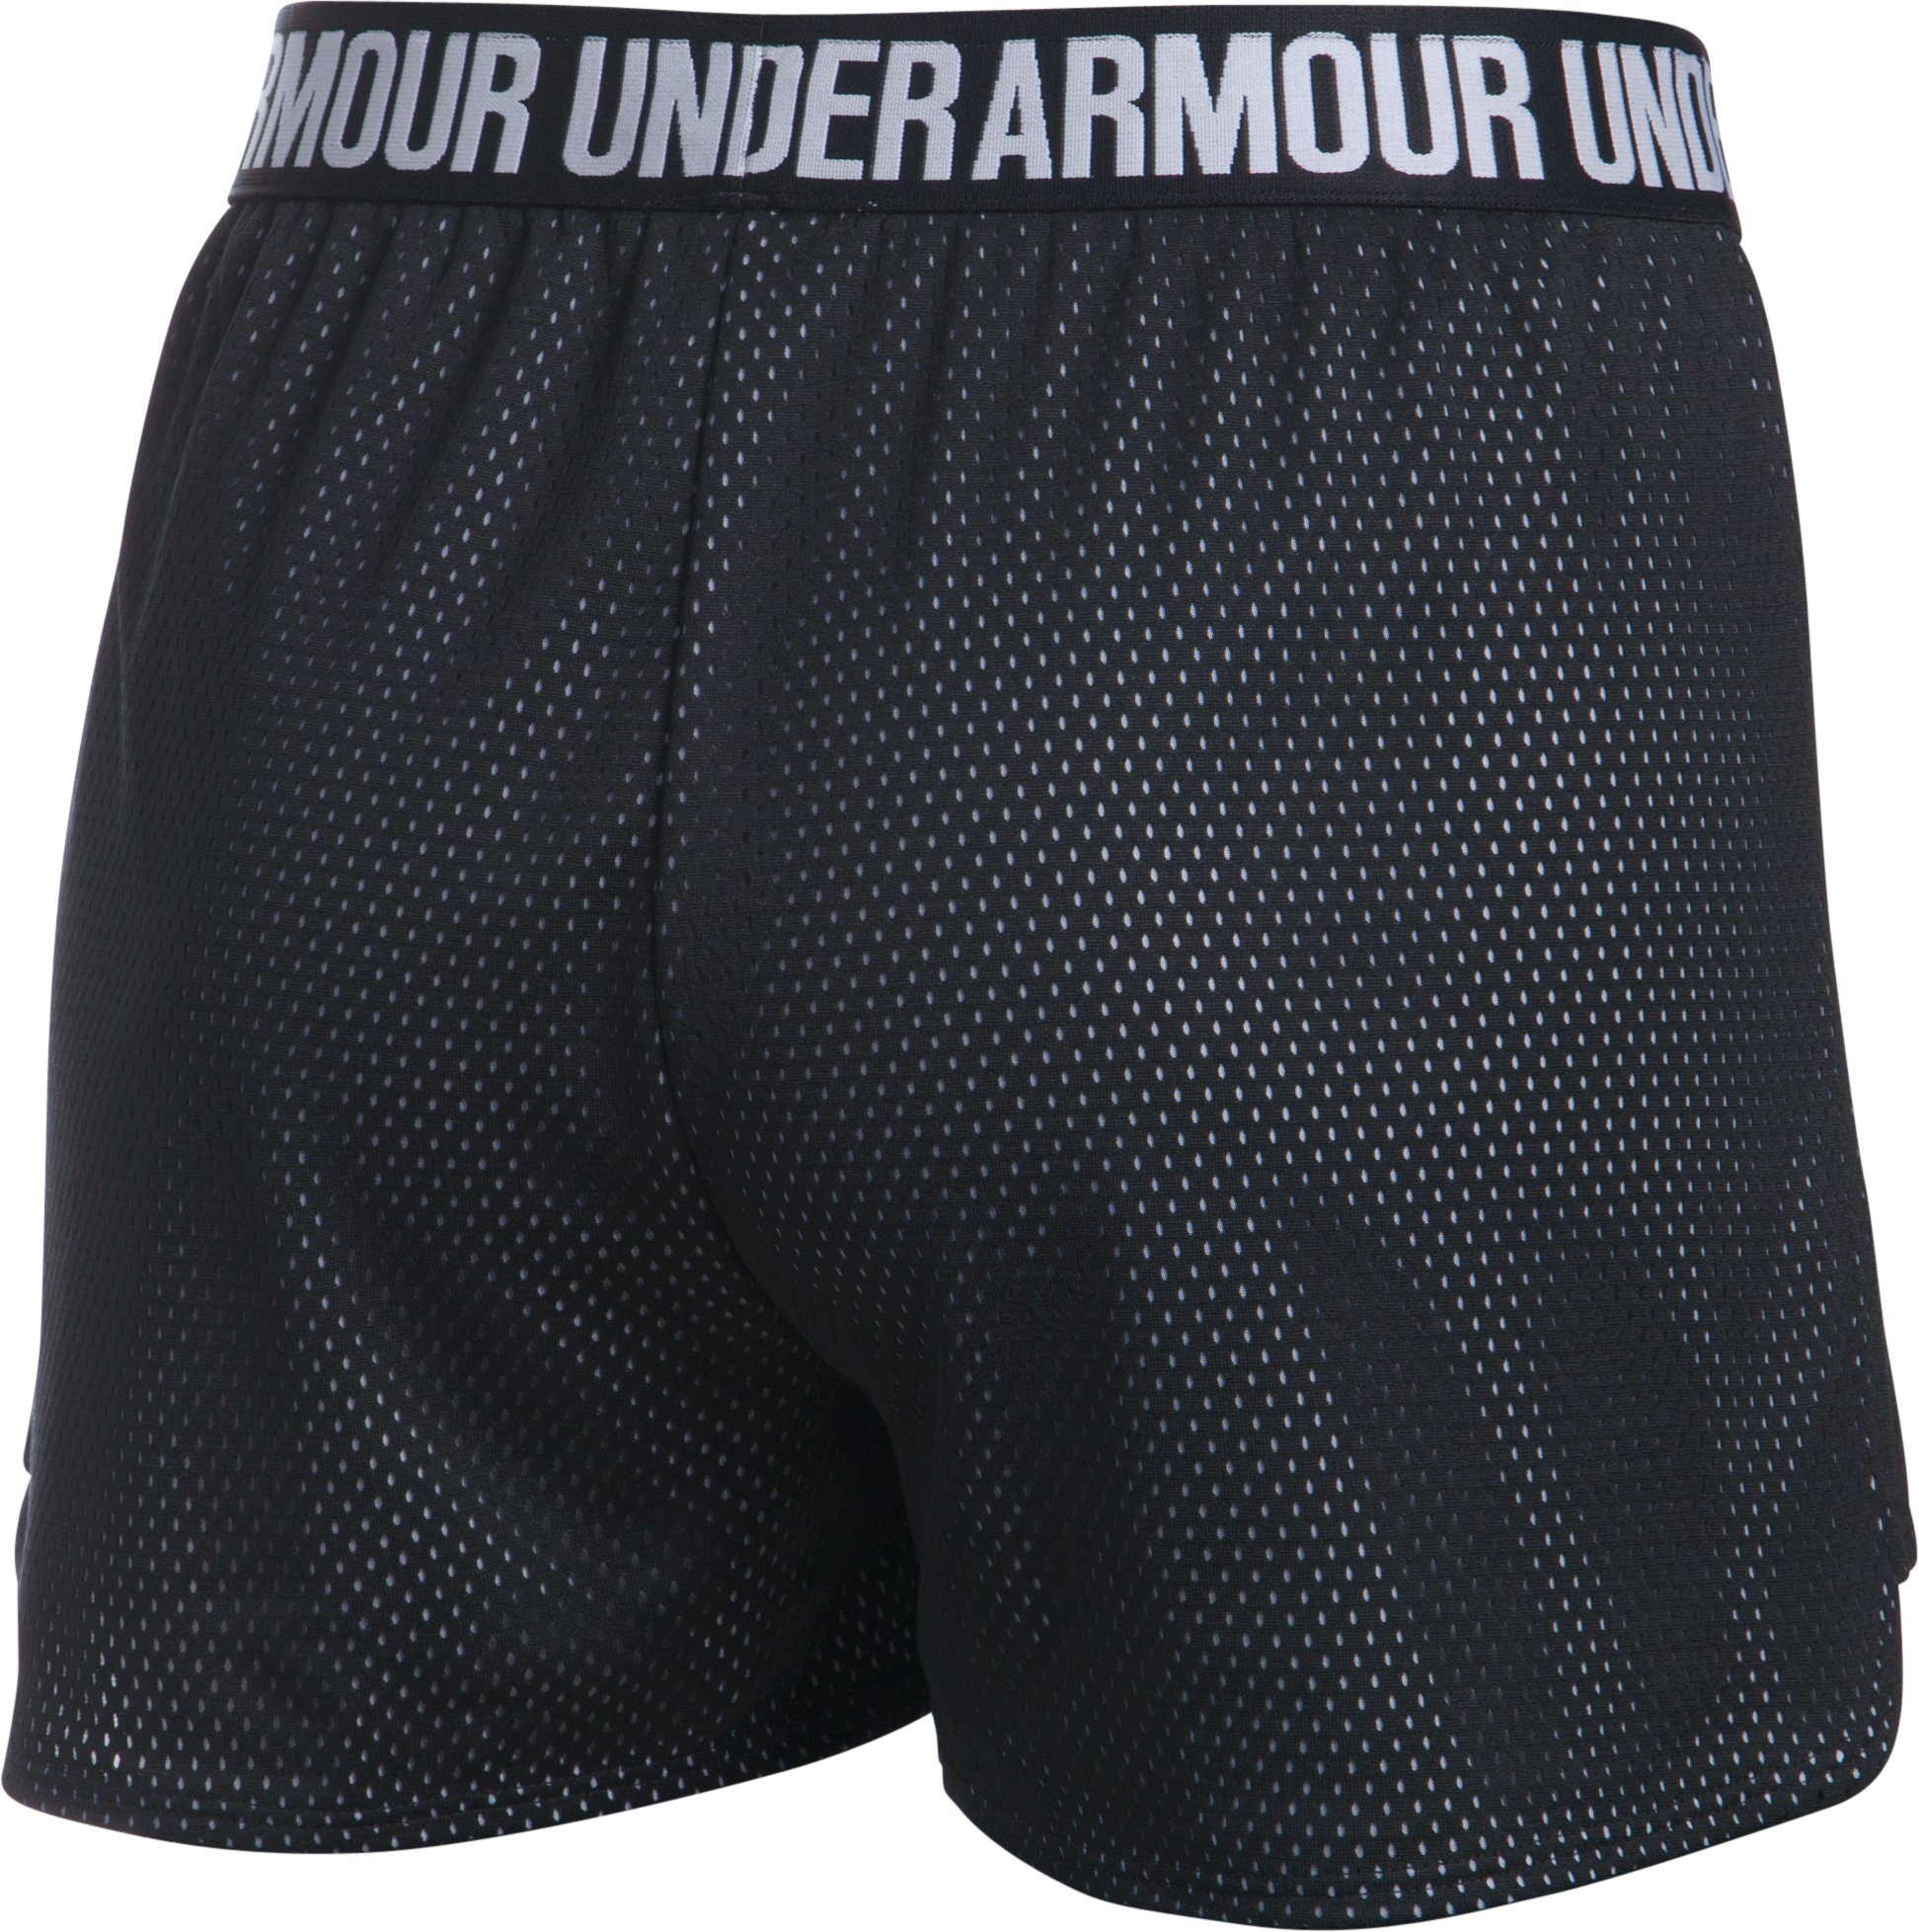 Women's UA Play Up Shorts 2.0 - Mesh, Black